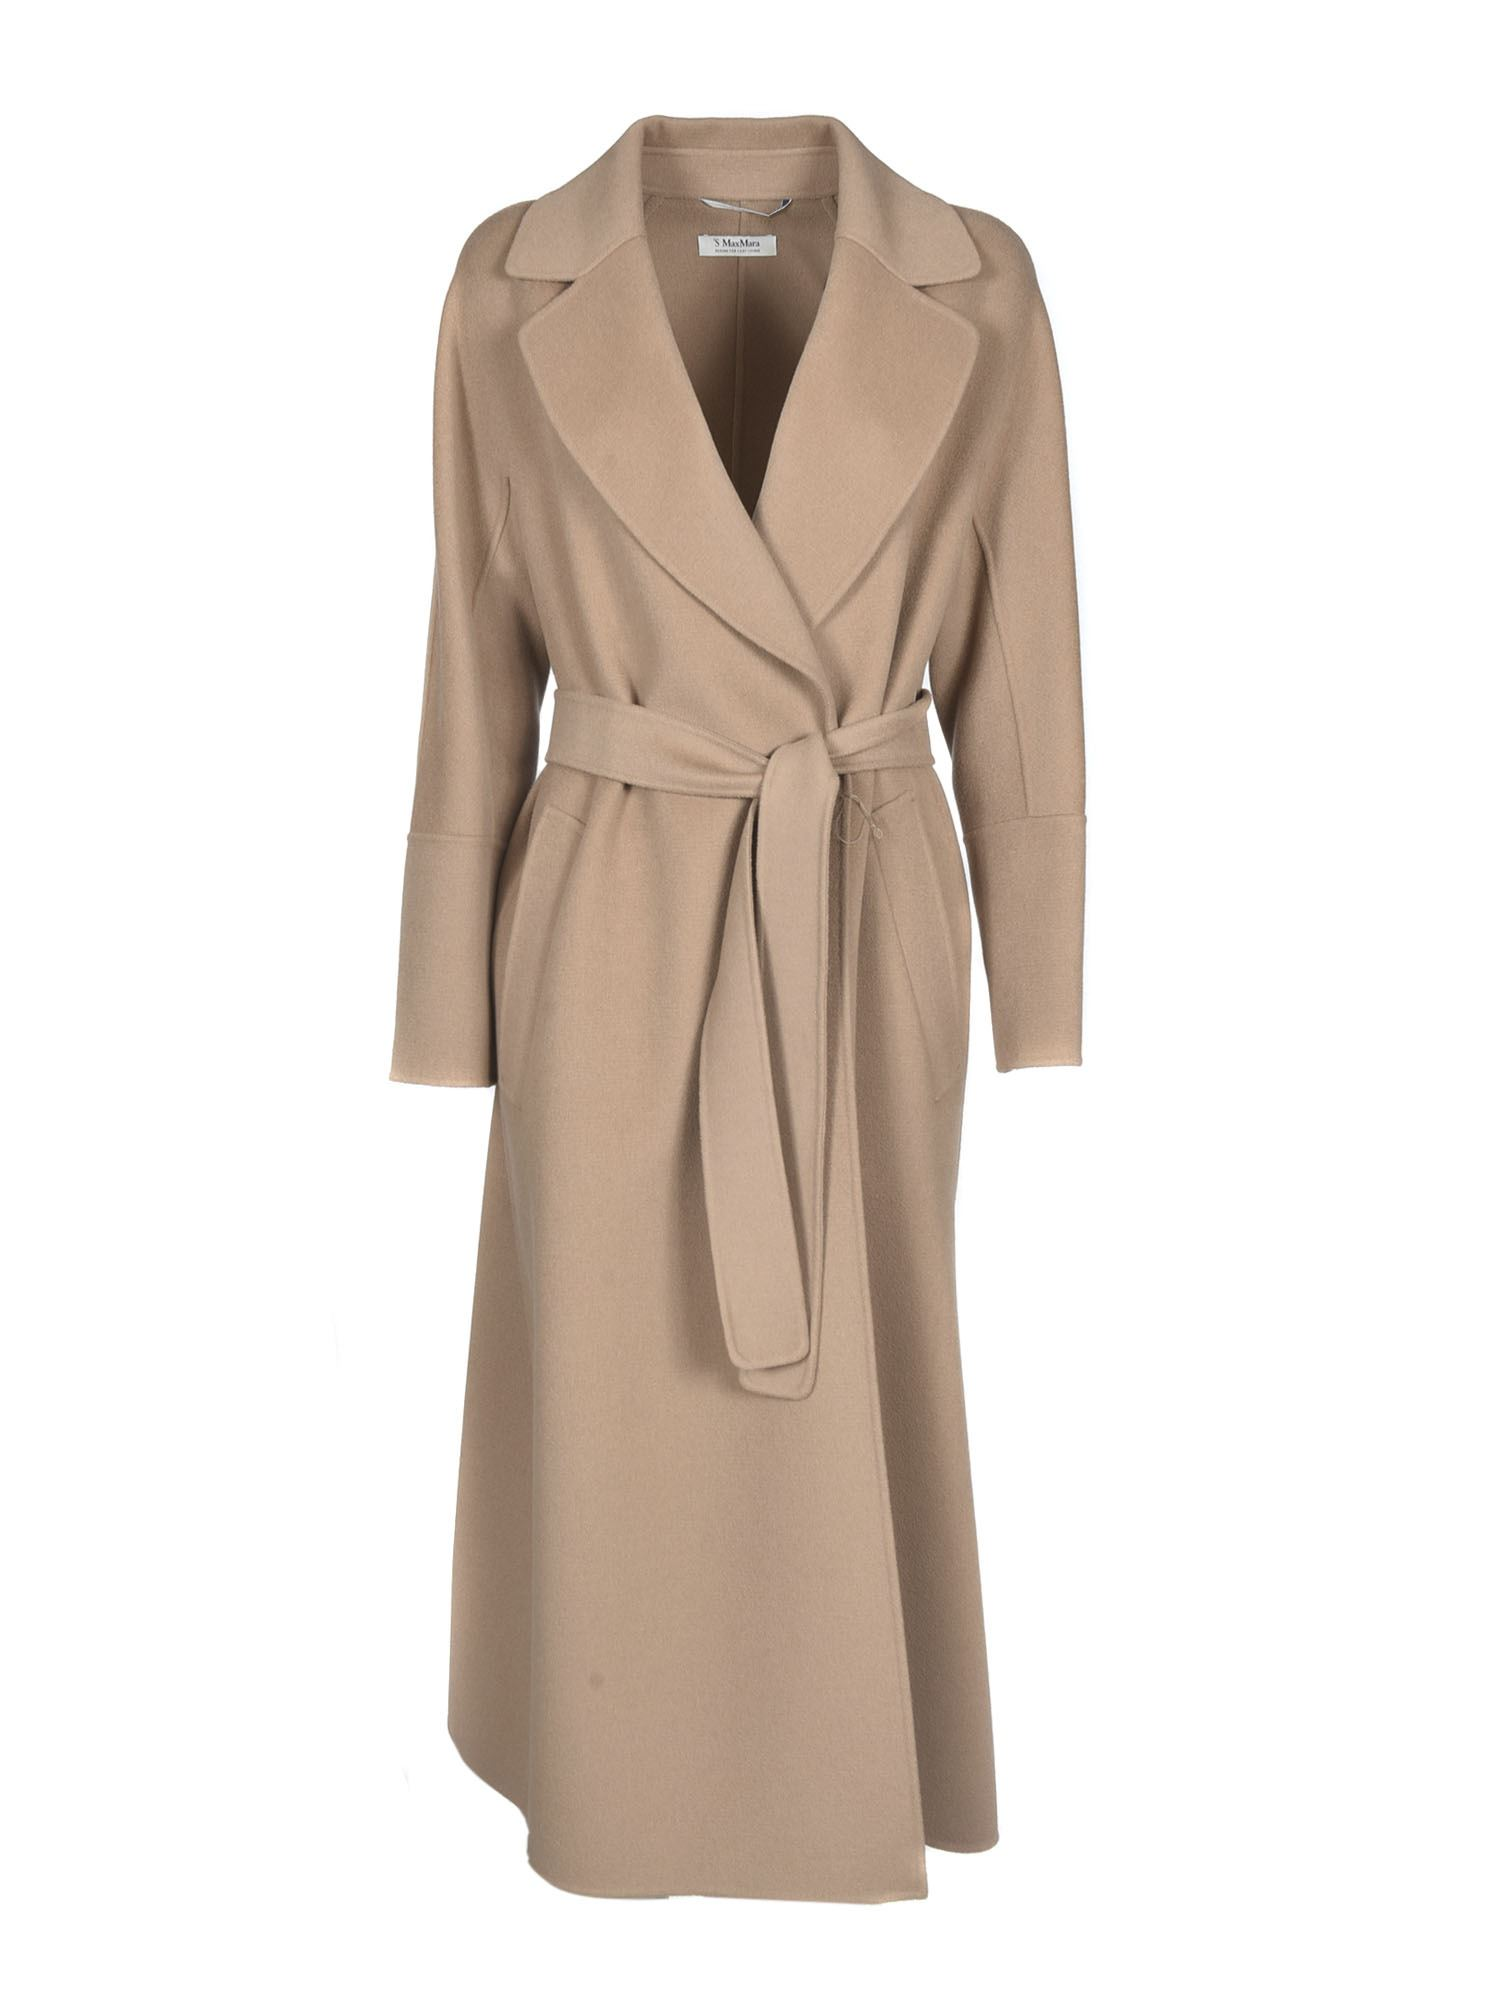 Max Mara ELISA COAT IN BEIGE